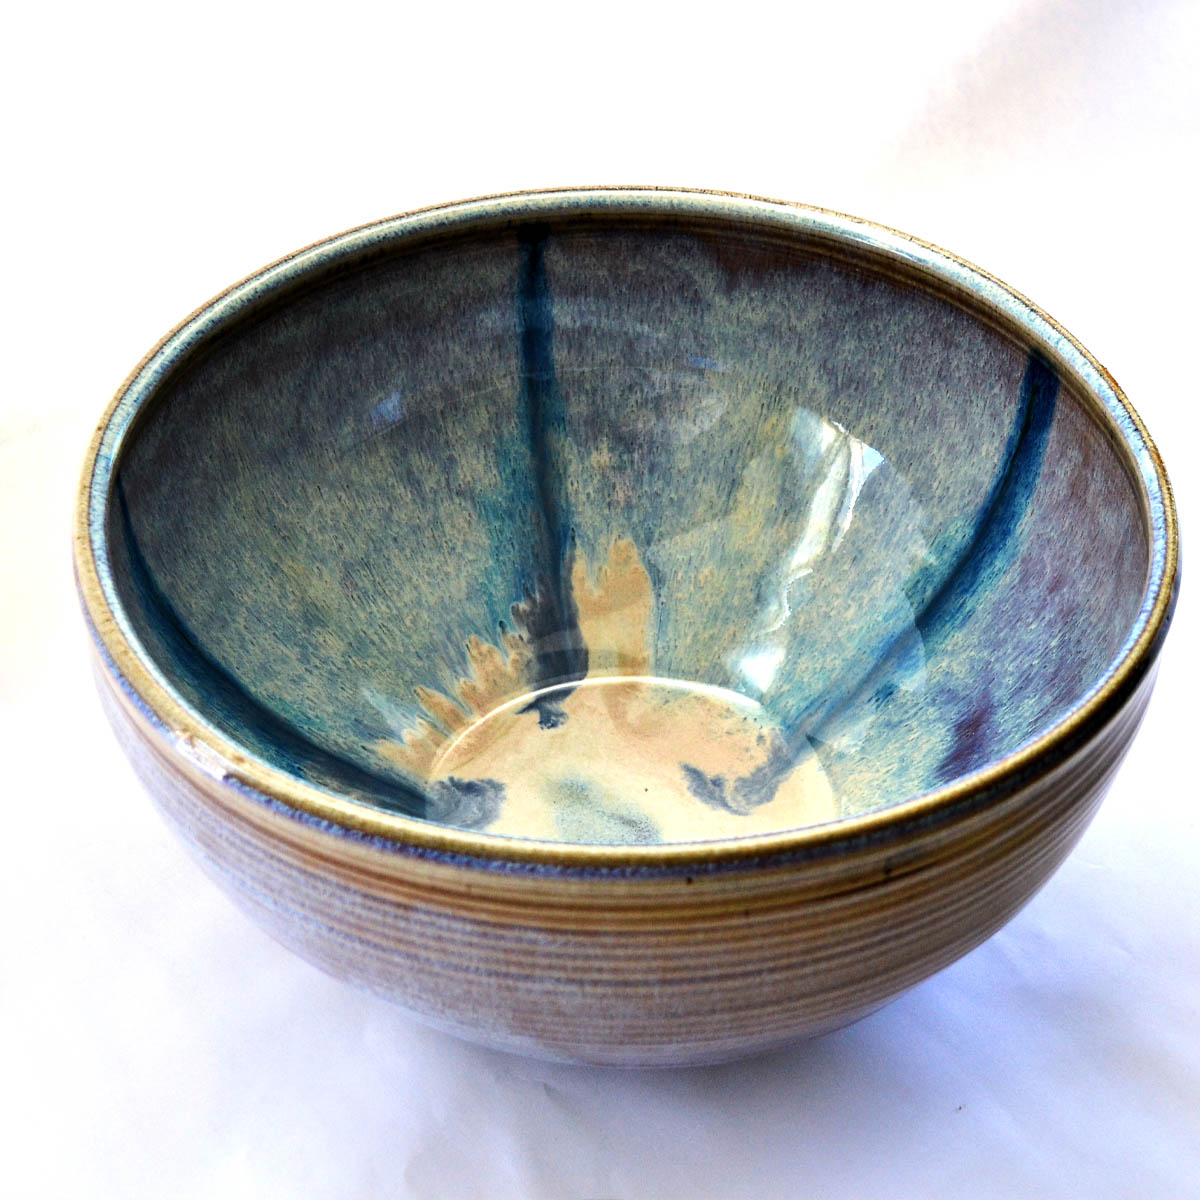 Ceramic Bowl - This oversized hand turned ceramic bowl was generously provided by the Baird Family. It truly is a functional piece of art study enough to have out for everyday use.